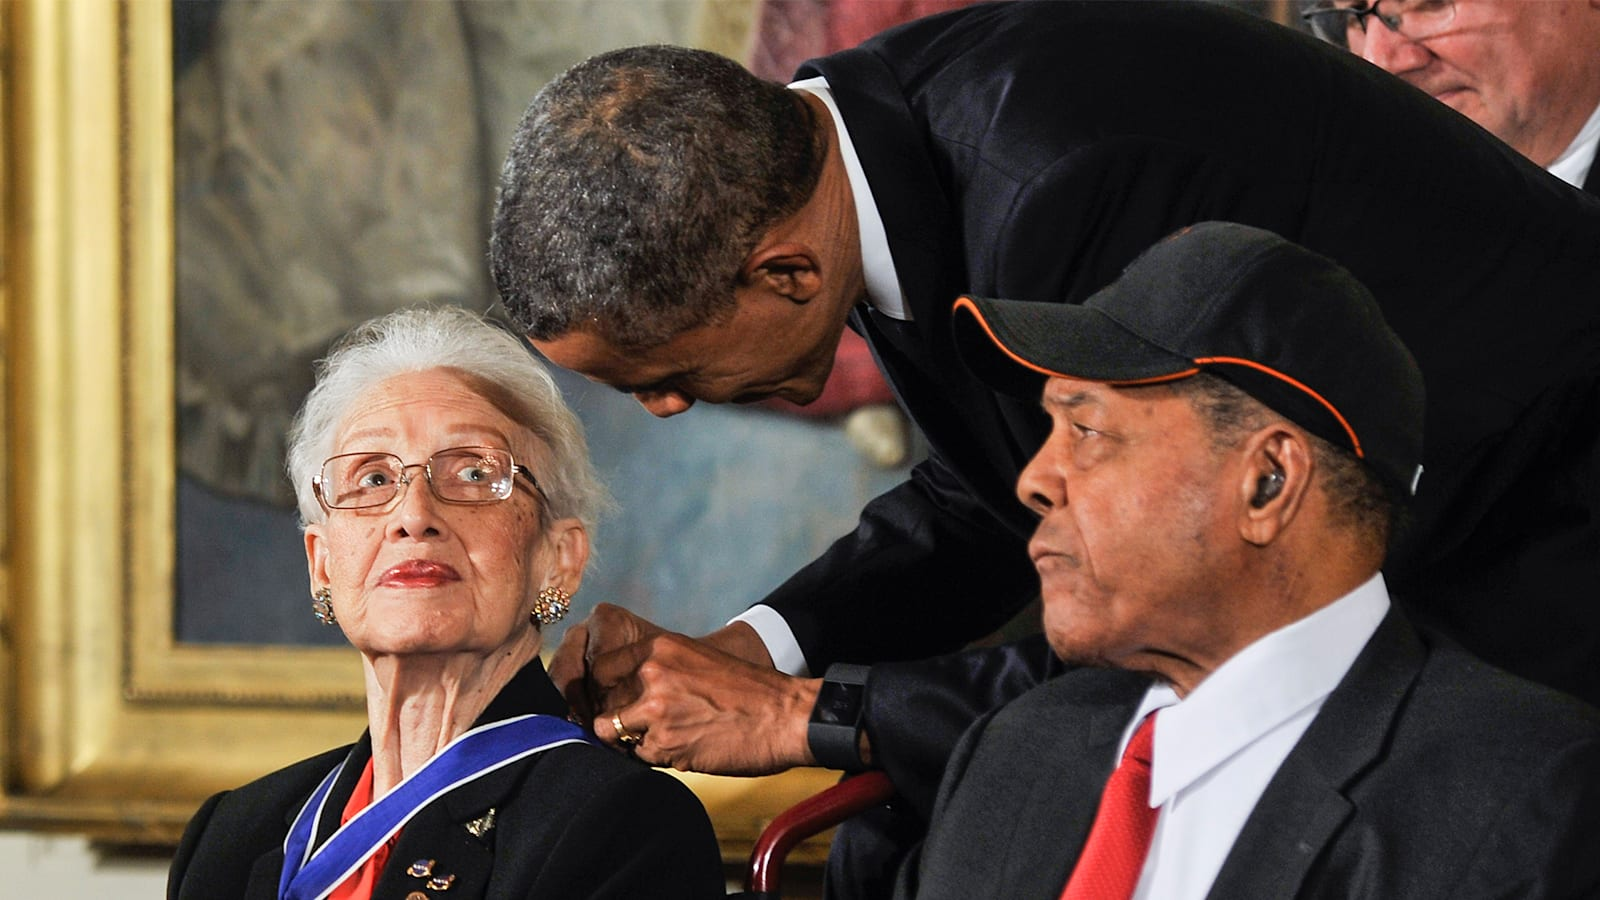 100-year-old NASA mathematician Katherine Johnson, who sent a man to the moon, tells her story